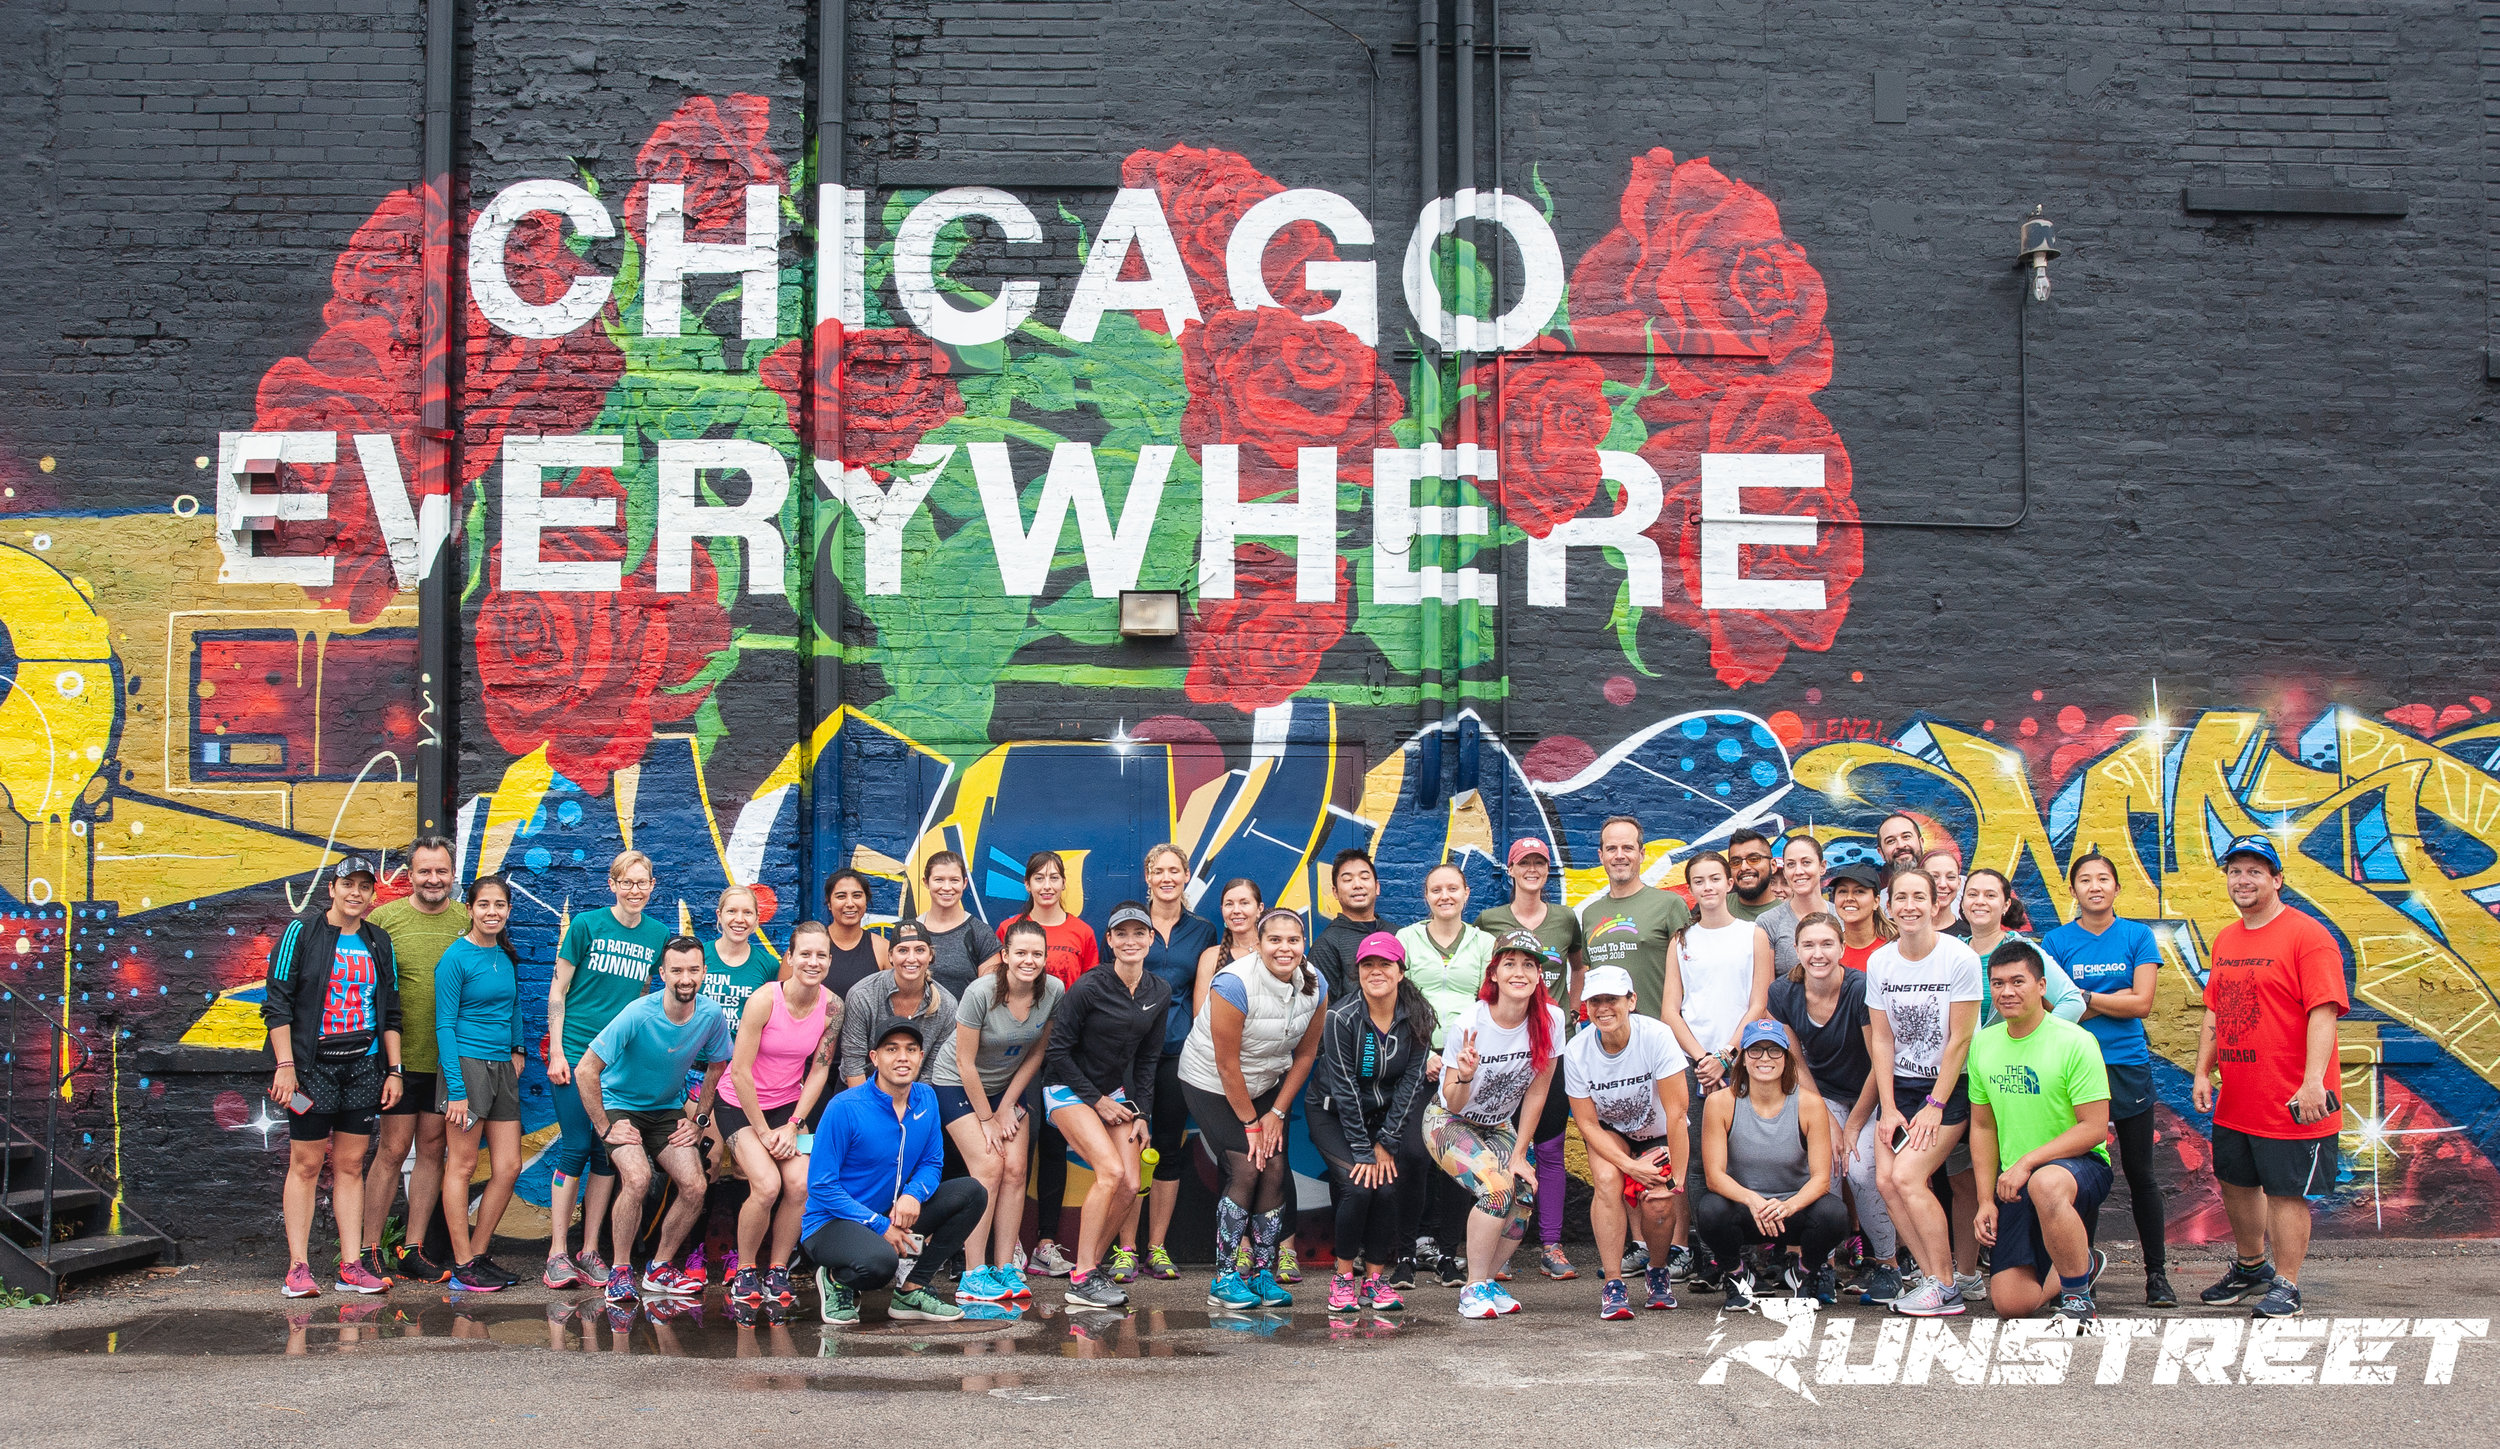 Photo by  Marques Jackson  at 2018 Chicago Shakeout Art Run with Clif Bar. Register for 2019 Chicago Shakeout Art Run  here .